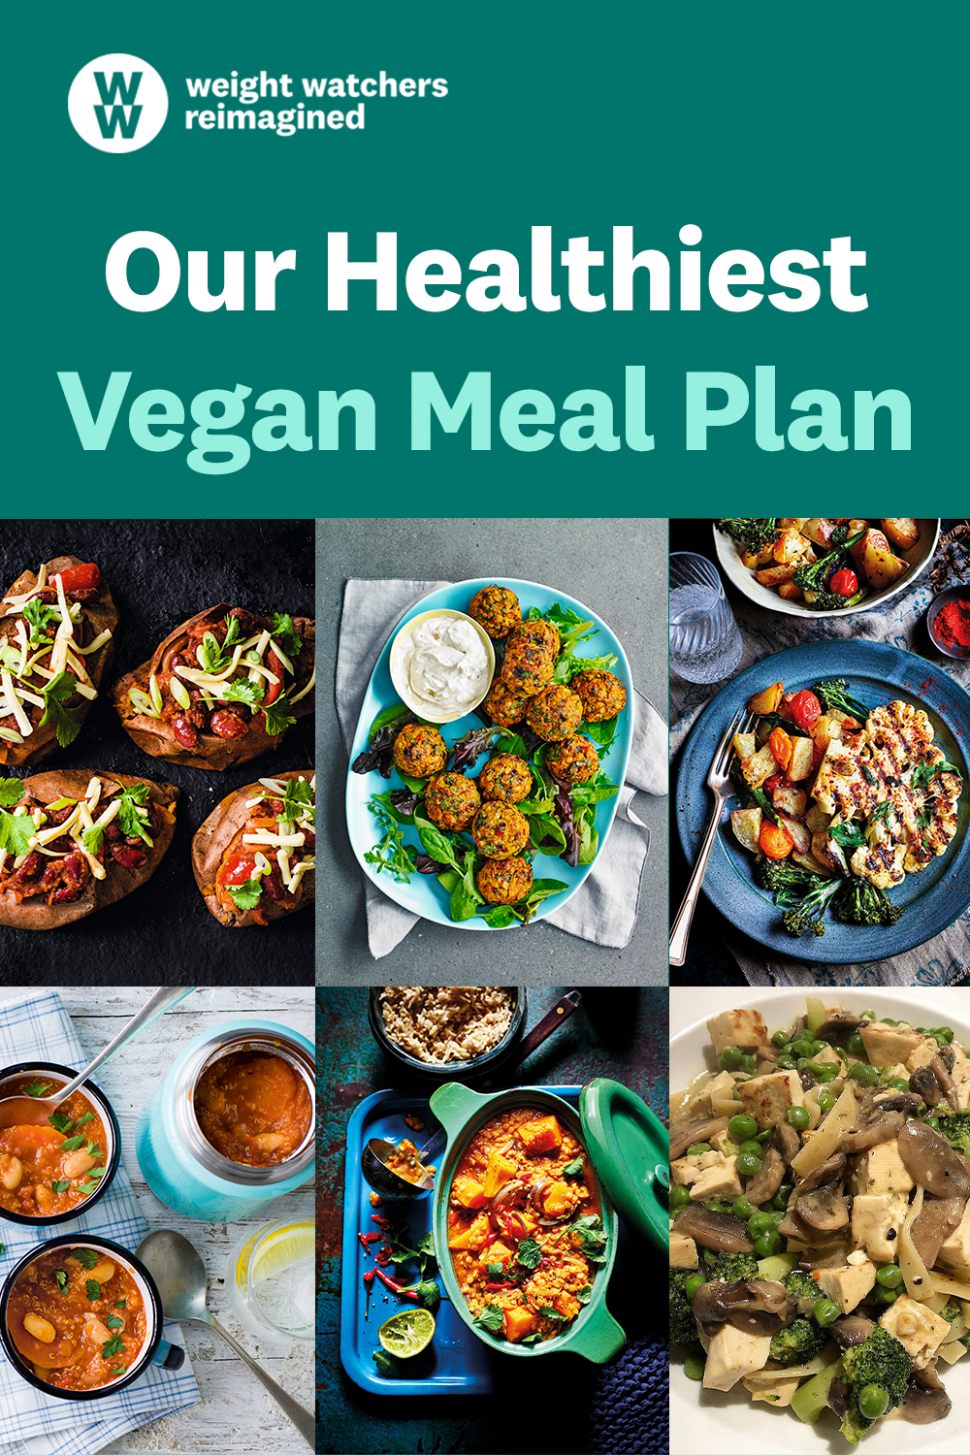 Exclusive 8-day meal plans | Vegan meal plans, Healthy, Vegan ...